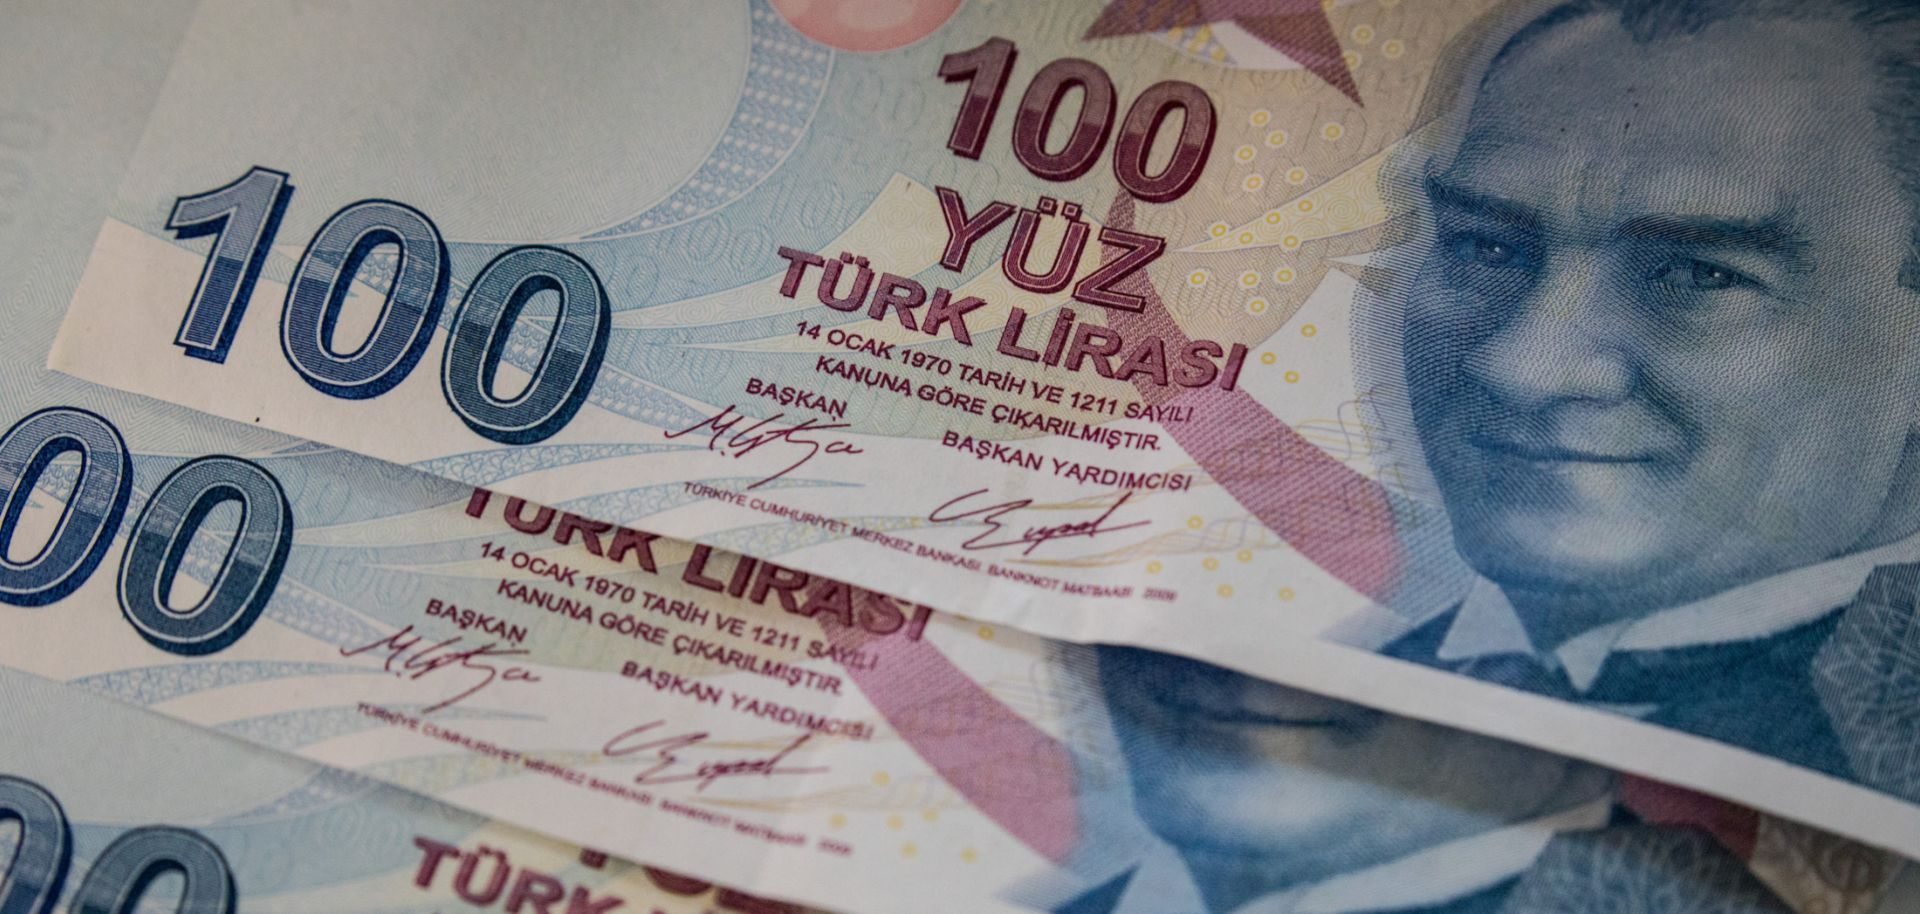 A photo illustration shows banknotes of the Turkish lira currency on Aug. 27, 2018, in Istanbul, Turkey.